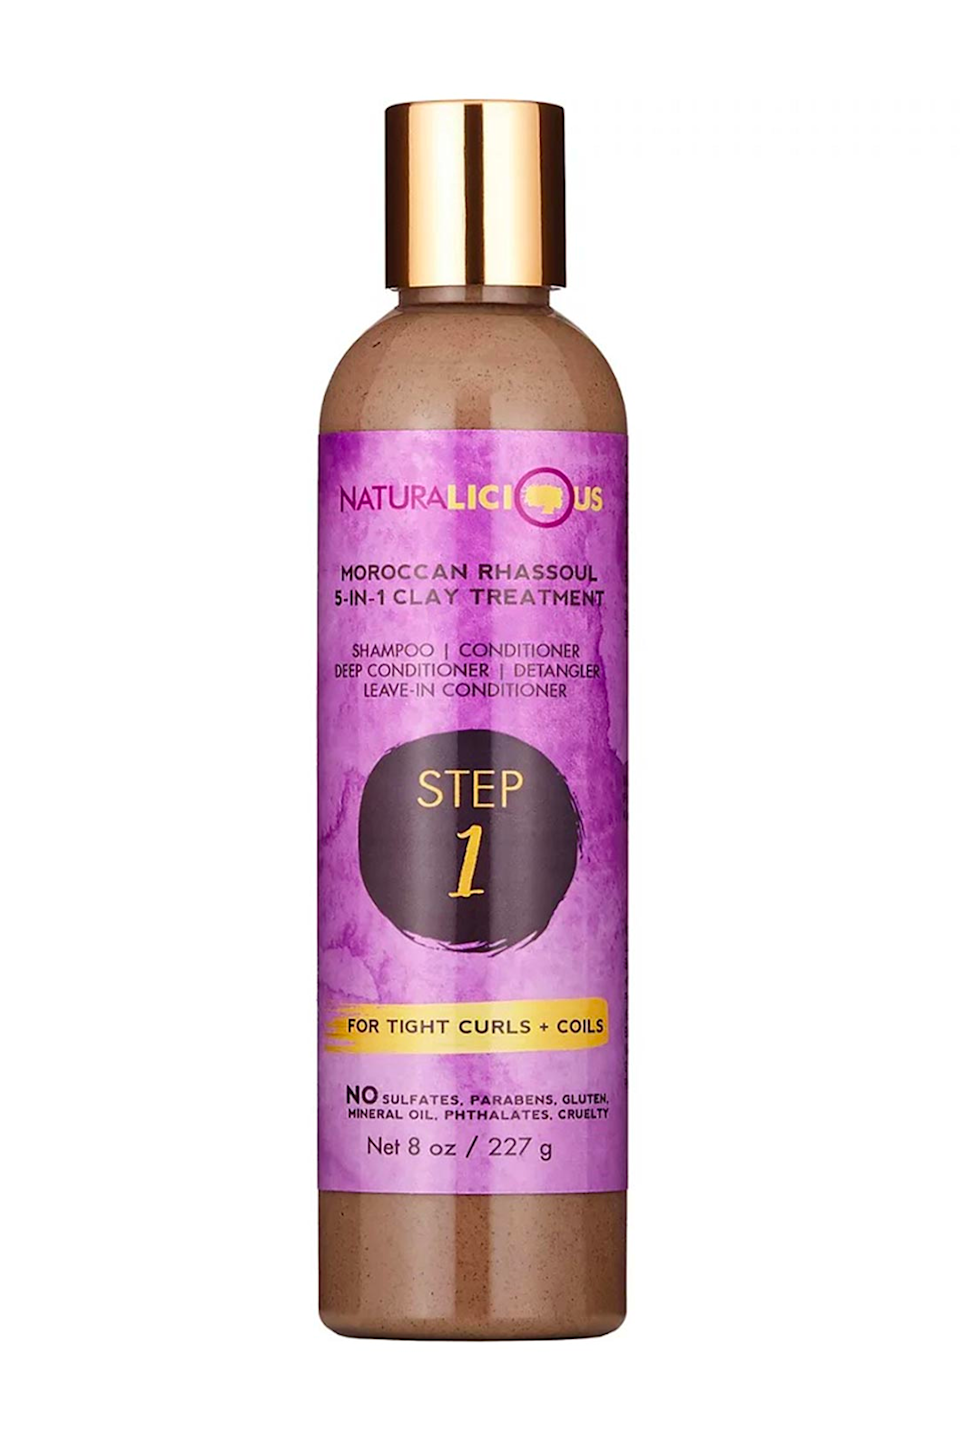 """<p><strong>Naturalicious</strong></p><p>ulta.com</p><p><strong>$23.00</strong></p><p><a href=""""https://go.redirectingat.com?id=74968X1596630&url=https%3A%2F%2Fwww.ulta.com%2Fmoroccan-rhassoul-5-in-1-clay-treatment%3FproductId%3Dpimprod2007742&sref=https%3A%2F%2Fwww.cosmopolitan.com%2Fstyle-beauty%2Fbeauty%2Fg36027428%2Fbest-detanglers-for-curly-hair%2F"""" rel=""""nofollow noopener"""" target=""""_blank"""" data-ylk=""""slk:Shop Now"""" class=""""link rapid-noclick-resp"""">Shop Now</a></p><p>K, prepare to be impressed: This formula does everything from cleansing and conditioning to detangling and styling (!). The formula's rhassoul clay works to gently clarify your scalp while <strong>avocado, olive, and <a href=""""https://www.cosmopolitan.com/style-beauty/beauty/a34996493/grapeseed-oil-for-skin/"""" rel=""""nofollow noopener"""" target=""""_blank"""" data-ylk=""""slk:grapseed oils"""" class=""""link rapid-noclick-resp"""">grapseed oils</a> deeply condition</strong>. Just work it through damp hair, massage it into your scalp, and gently detangle any knots before rinsing it allll the way out.</p>"""